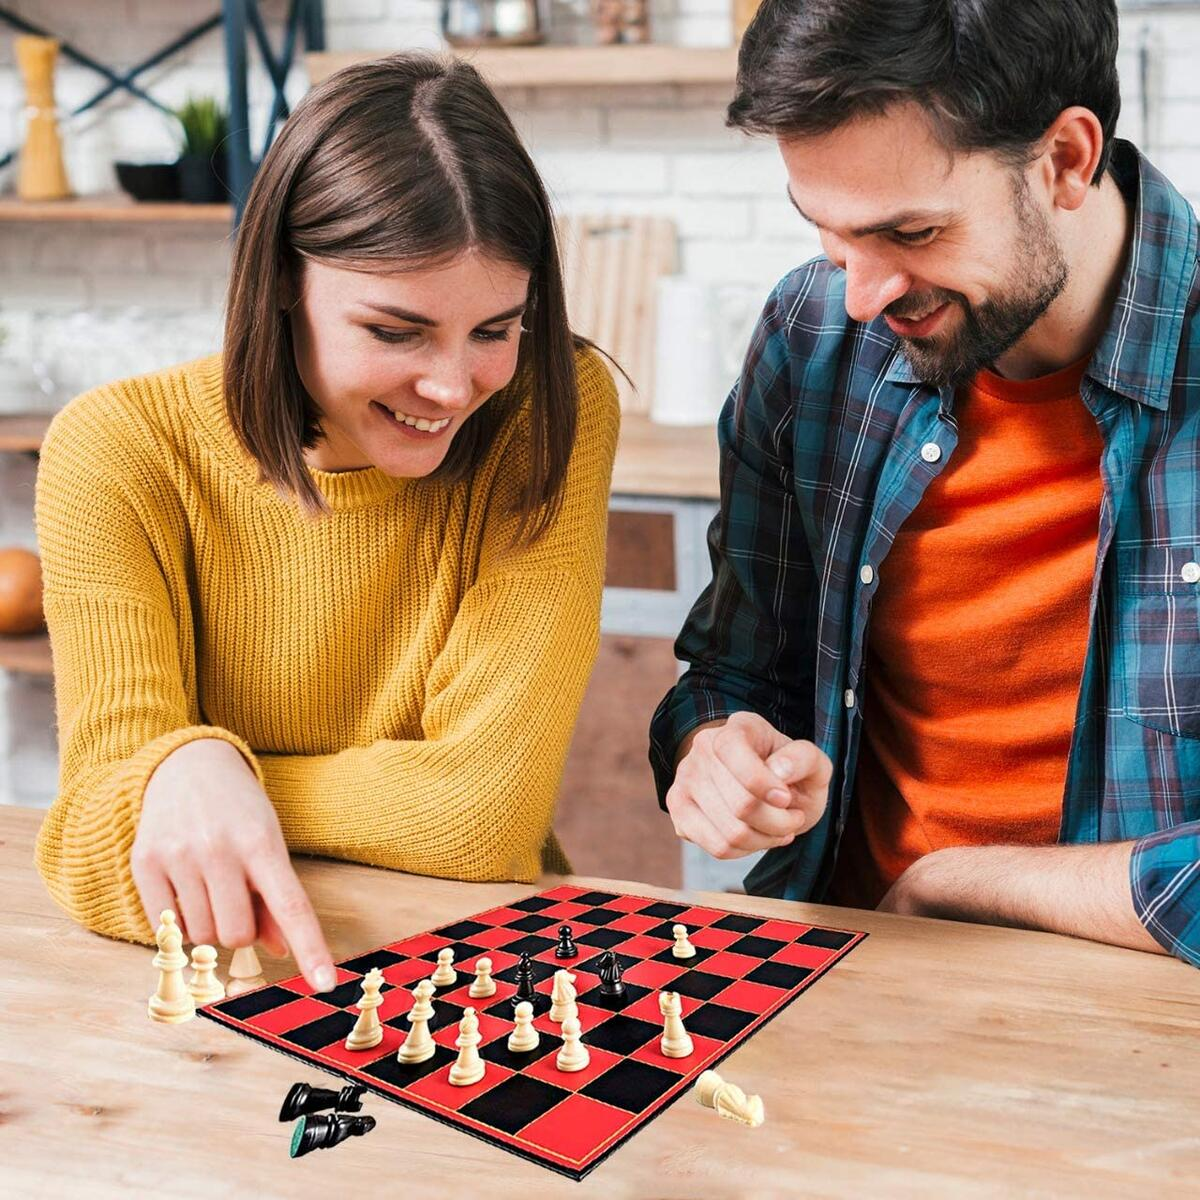 Classic Chess Board Game, with Super Durable Board, Best Folding Board Game for The Entire Family.